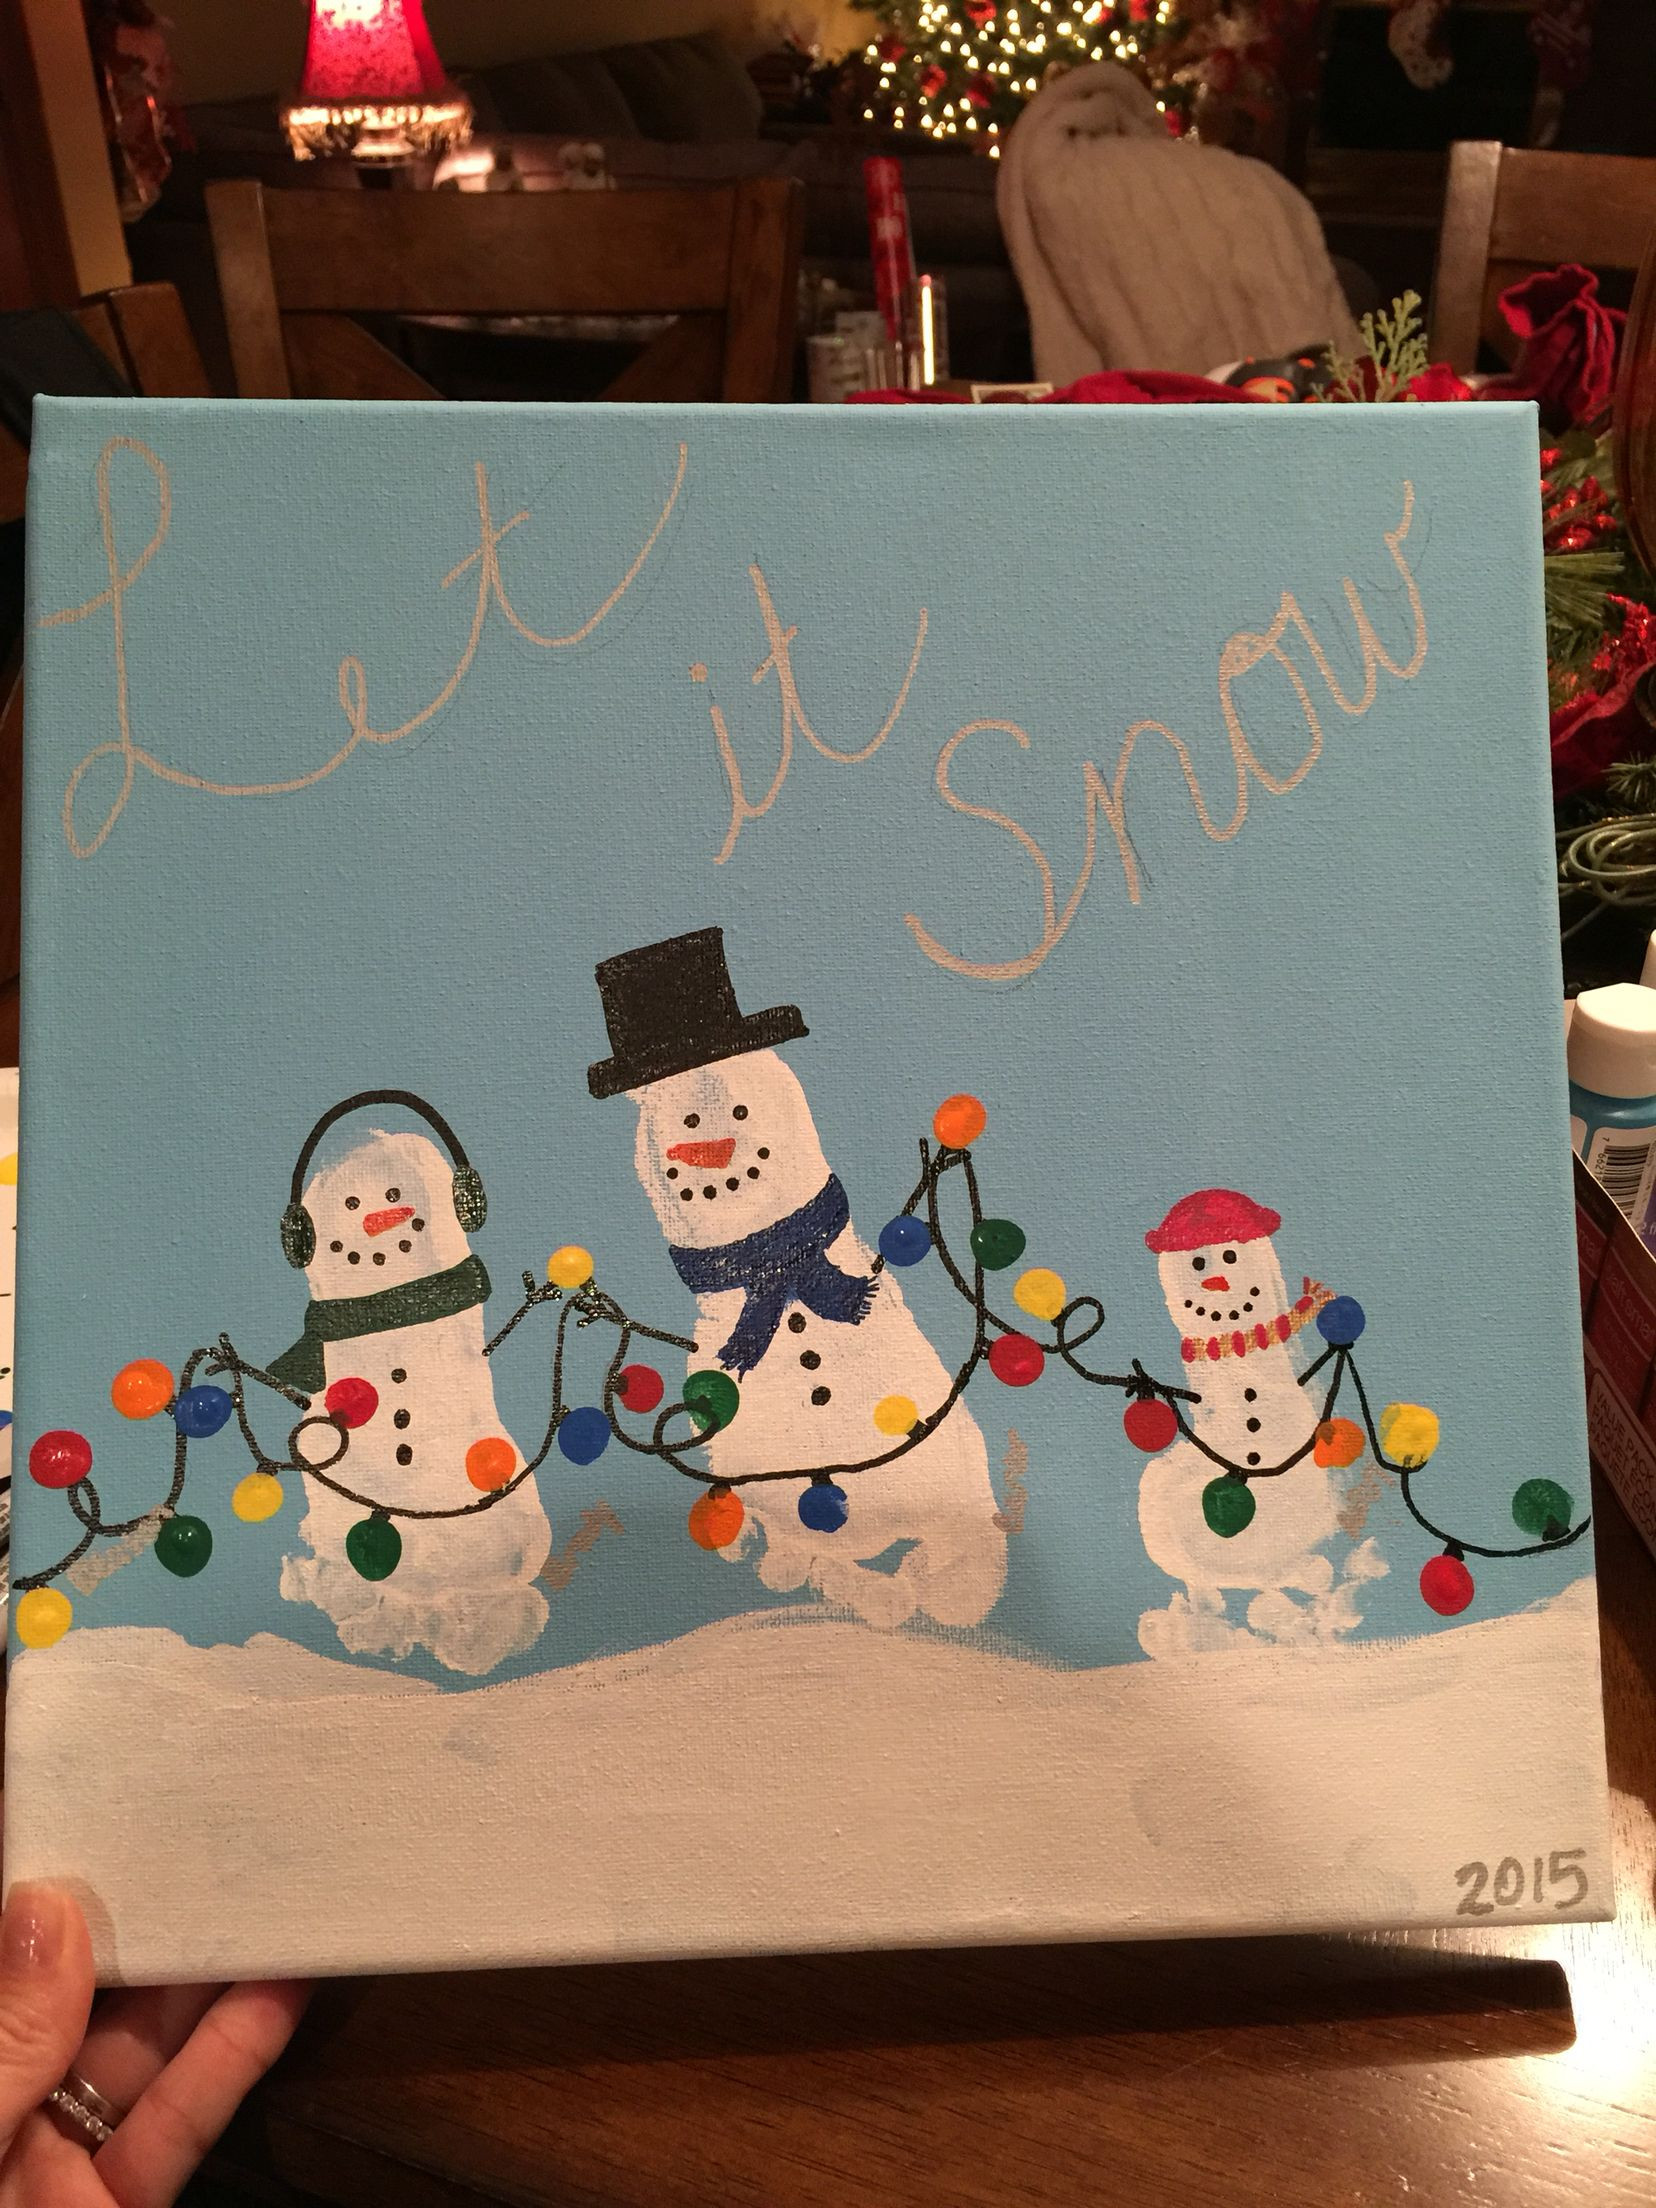 Best ideas about Canvas Crafts For Toddlers . Save or Pin Snowman Footprint canvas art Crafts Now.